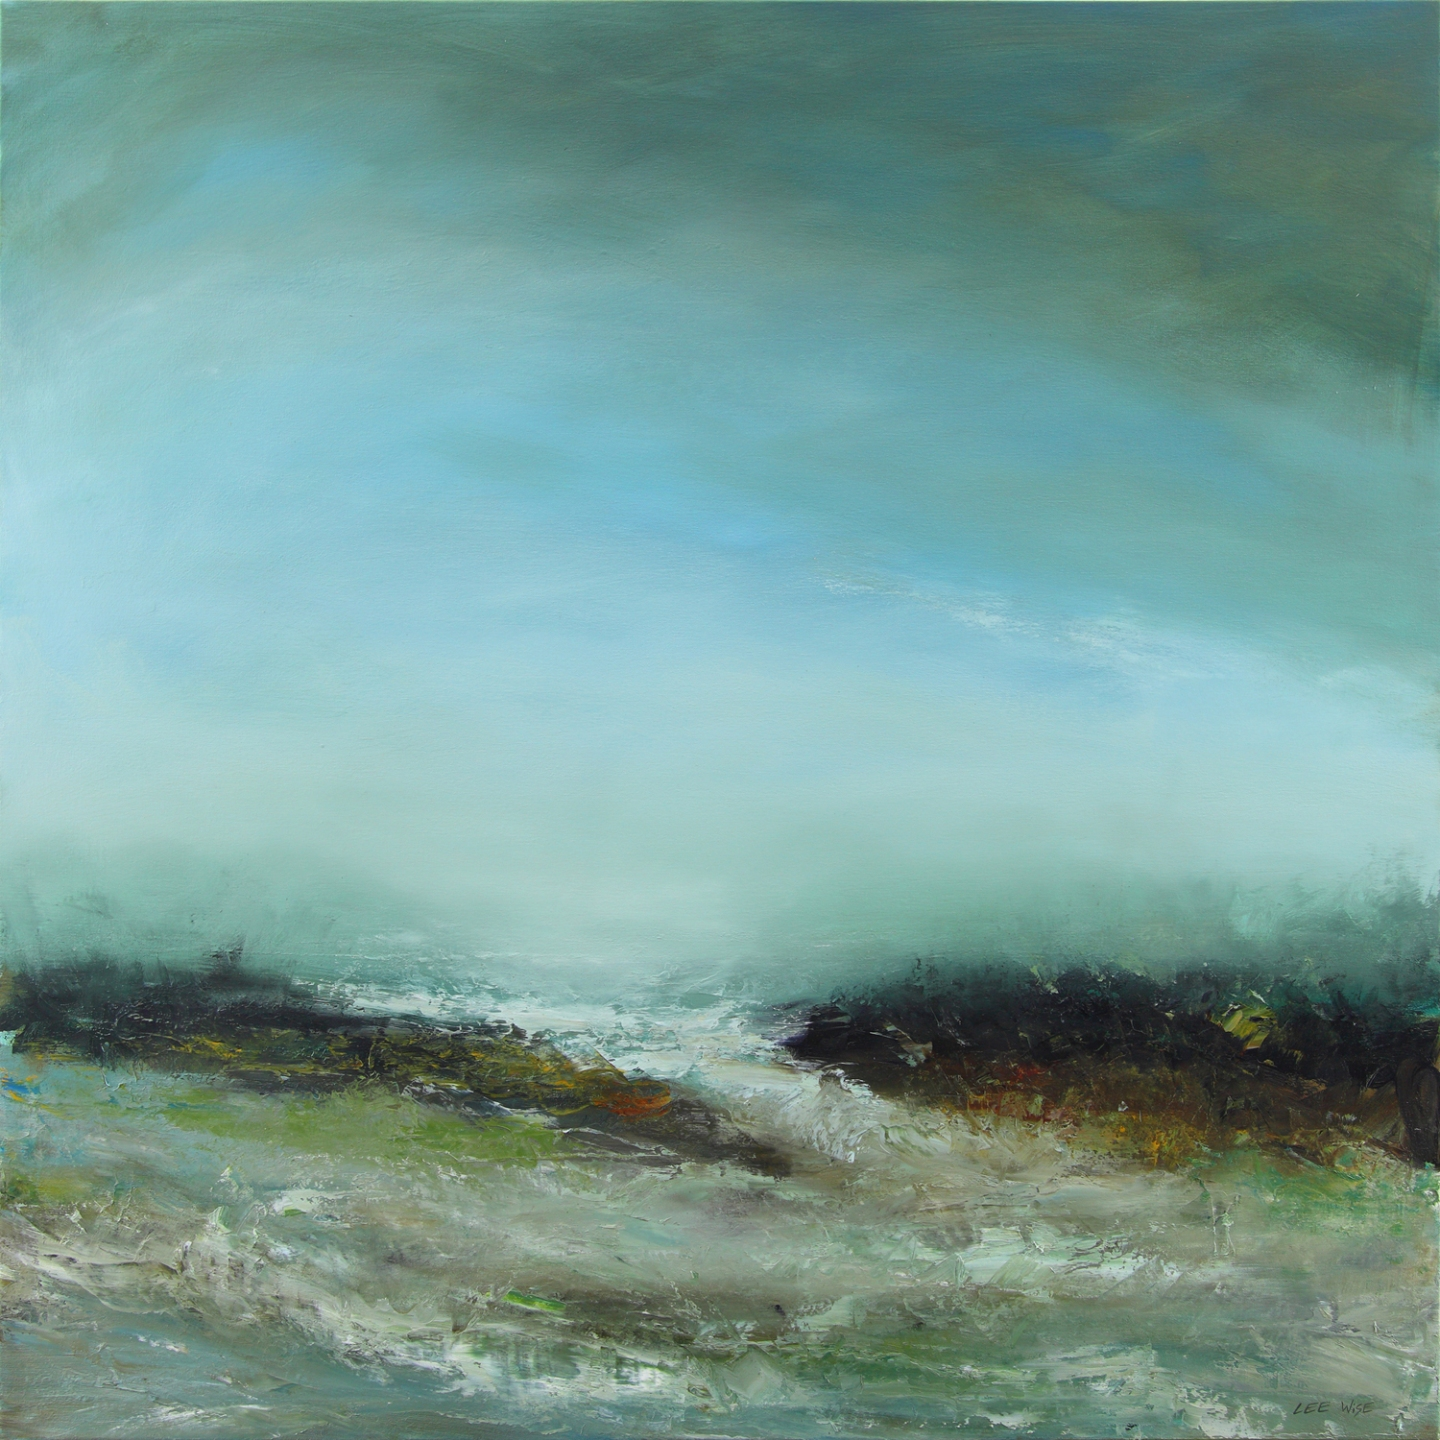 Breakers, oil on canvas, 100x100cm